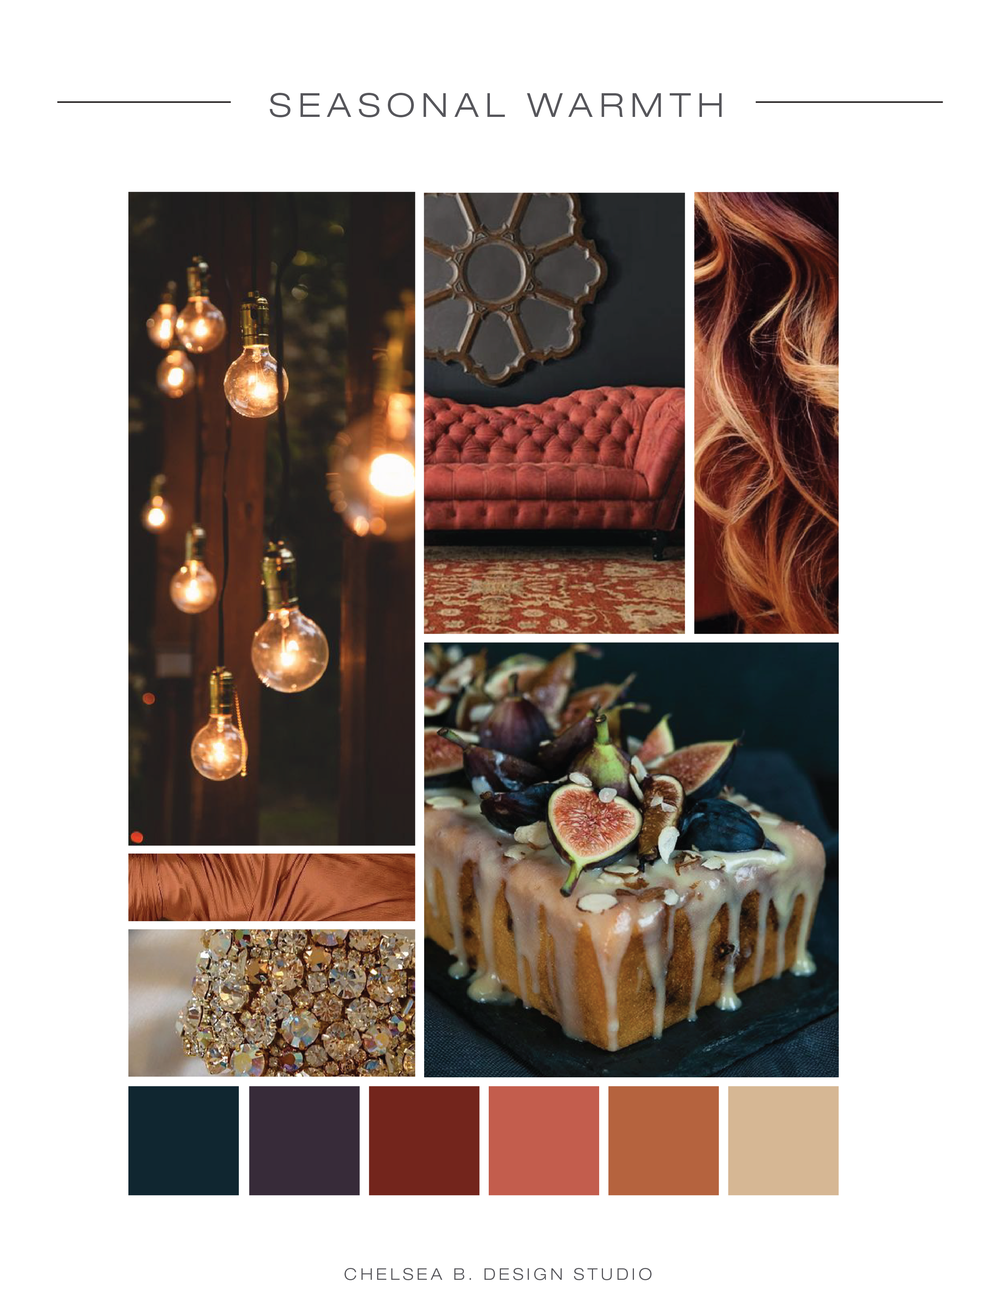 lights | couch | curls | cake | satin | bling